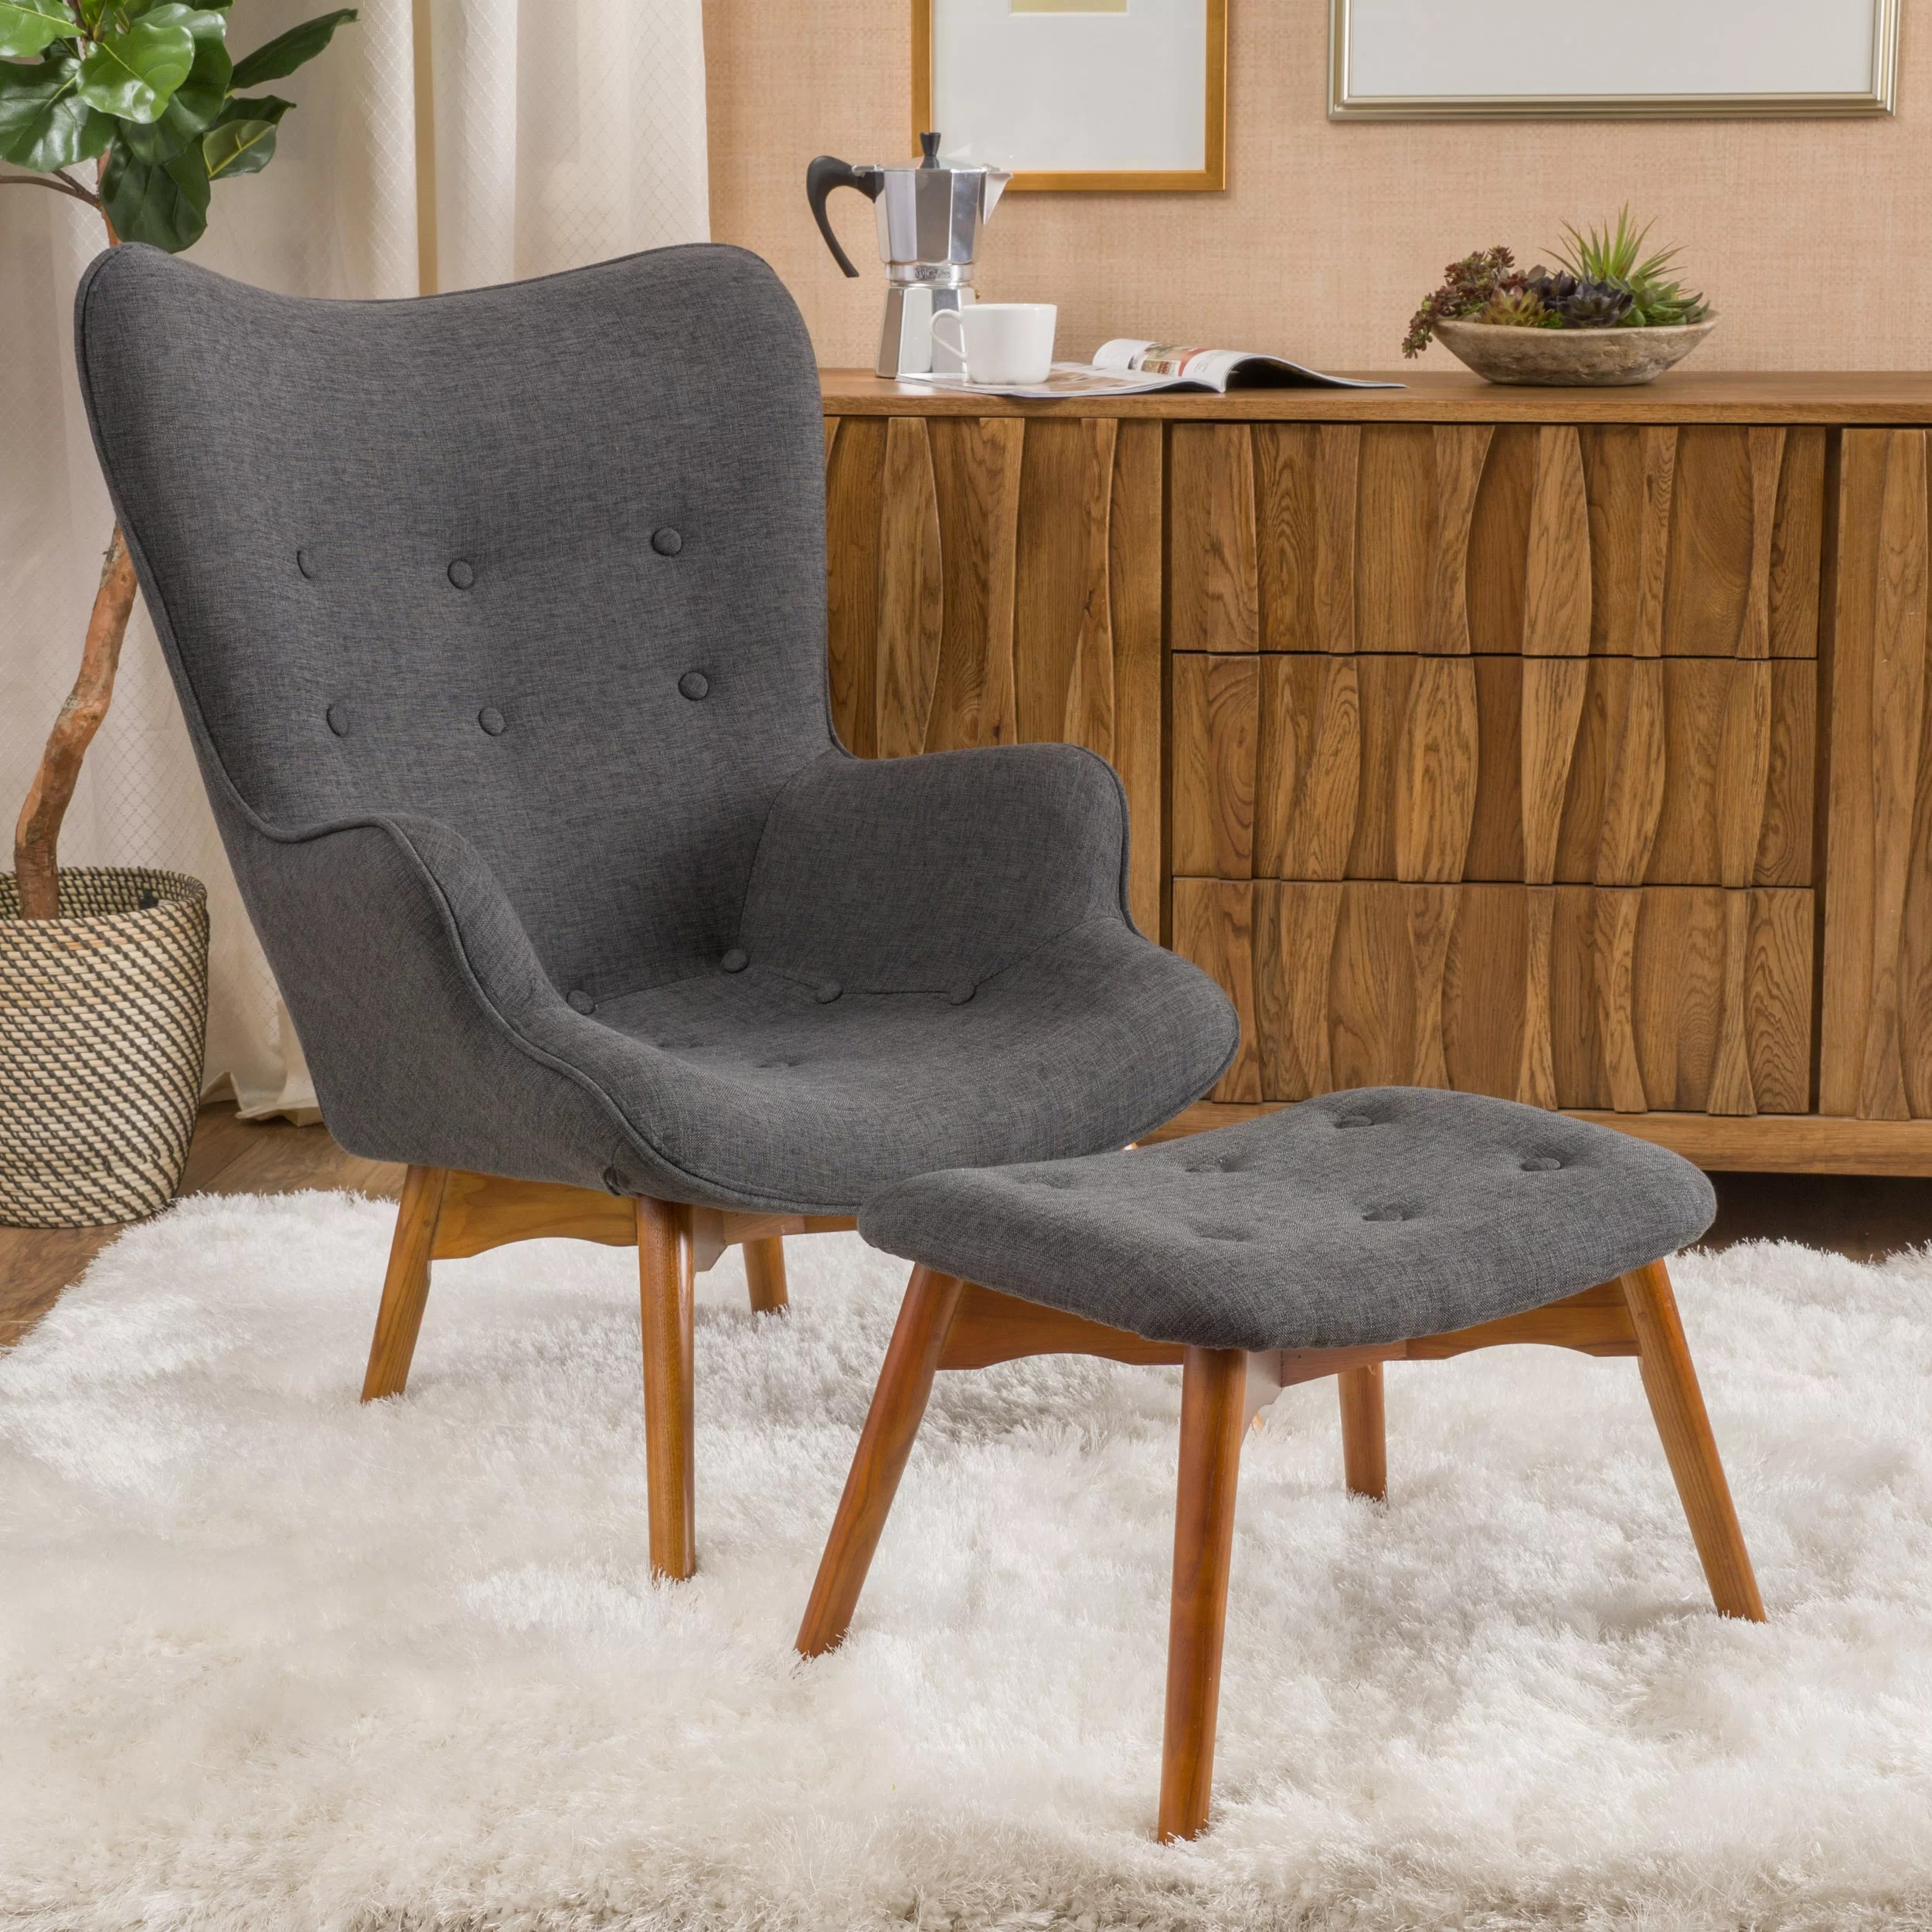 Teal Accent Chair Ottoman